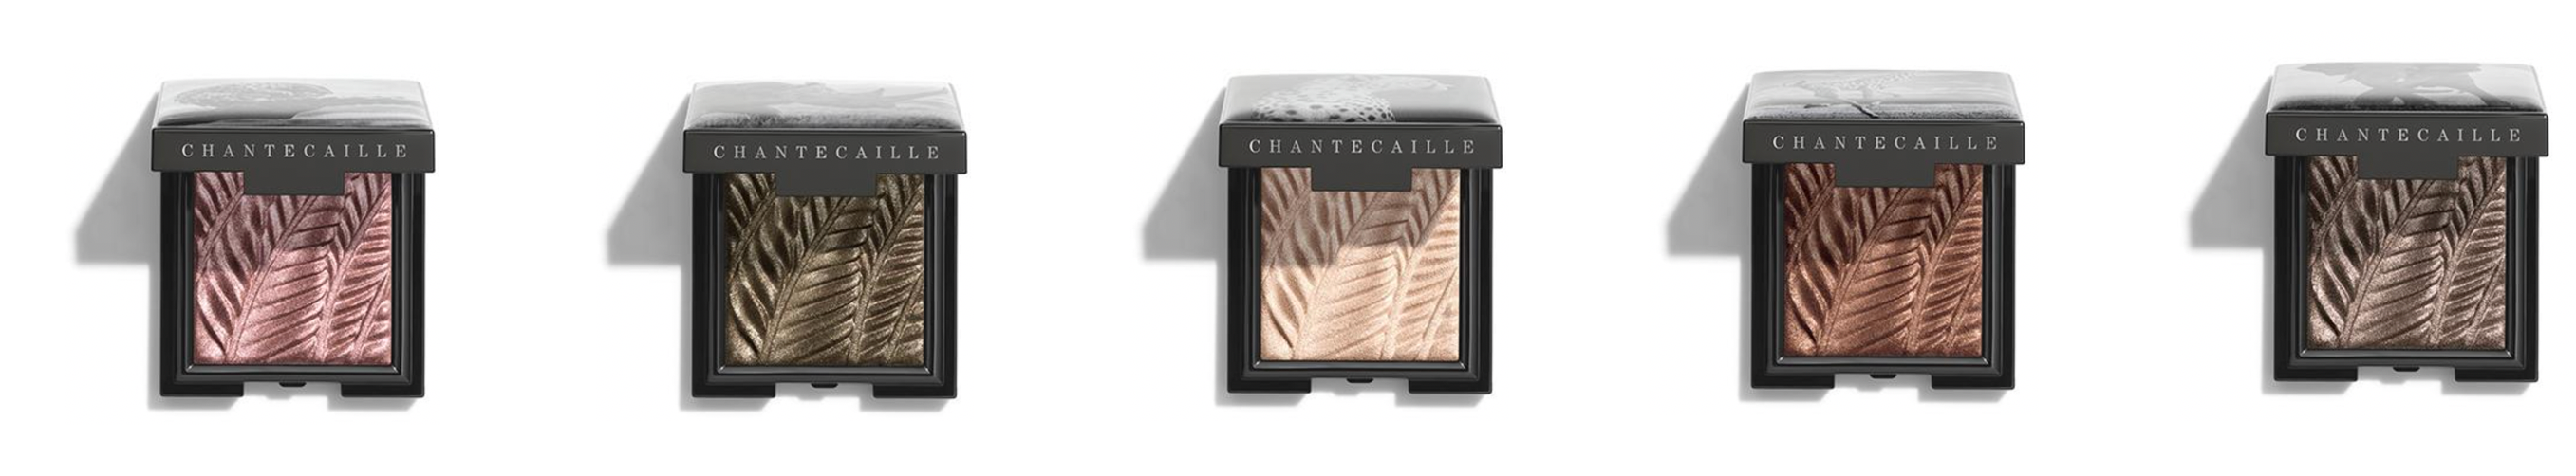 Chantecaille - Africa's Vanishing Species Collection